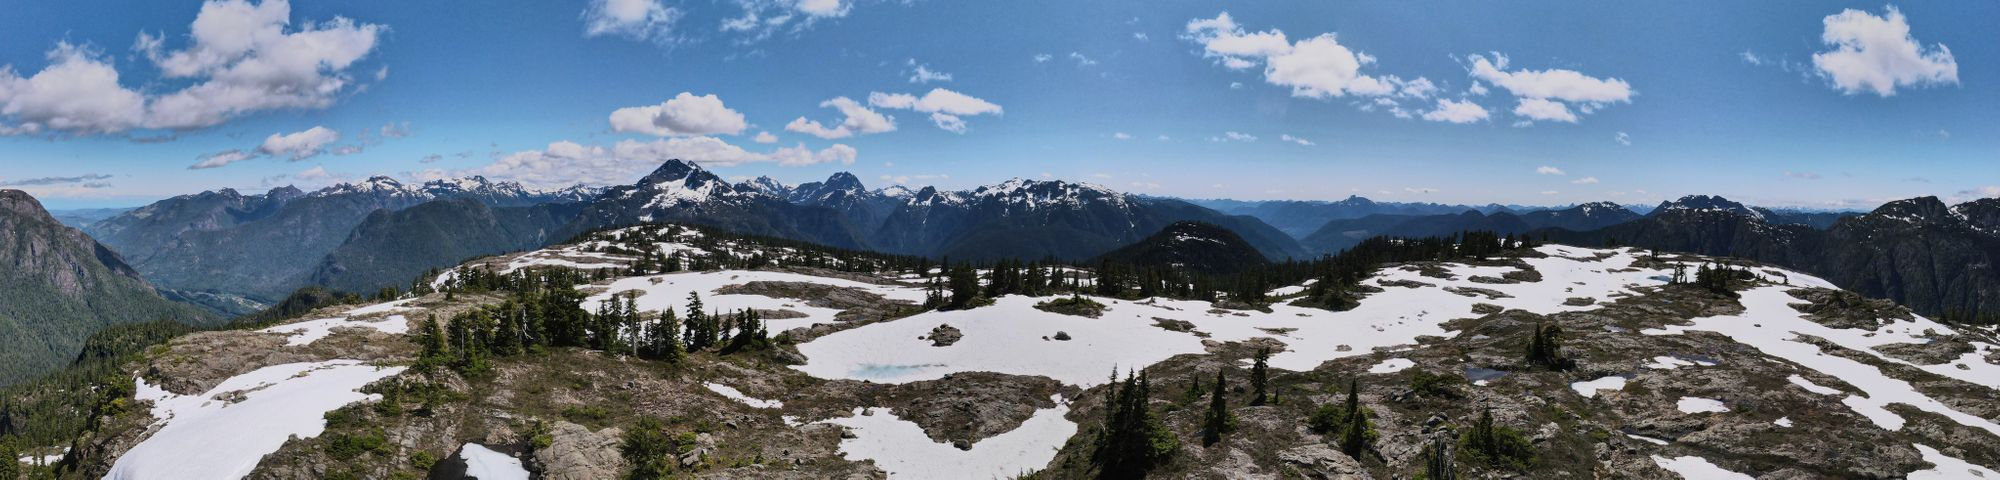 Crest mountain summit pano